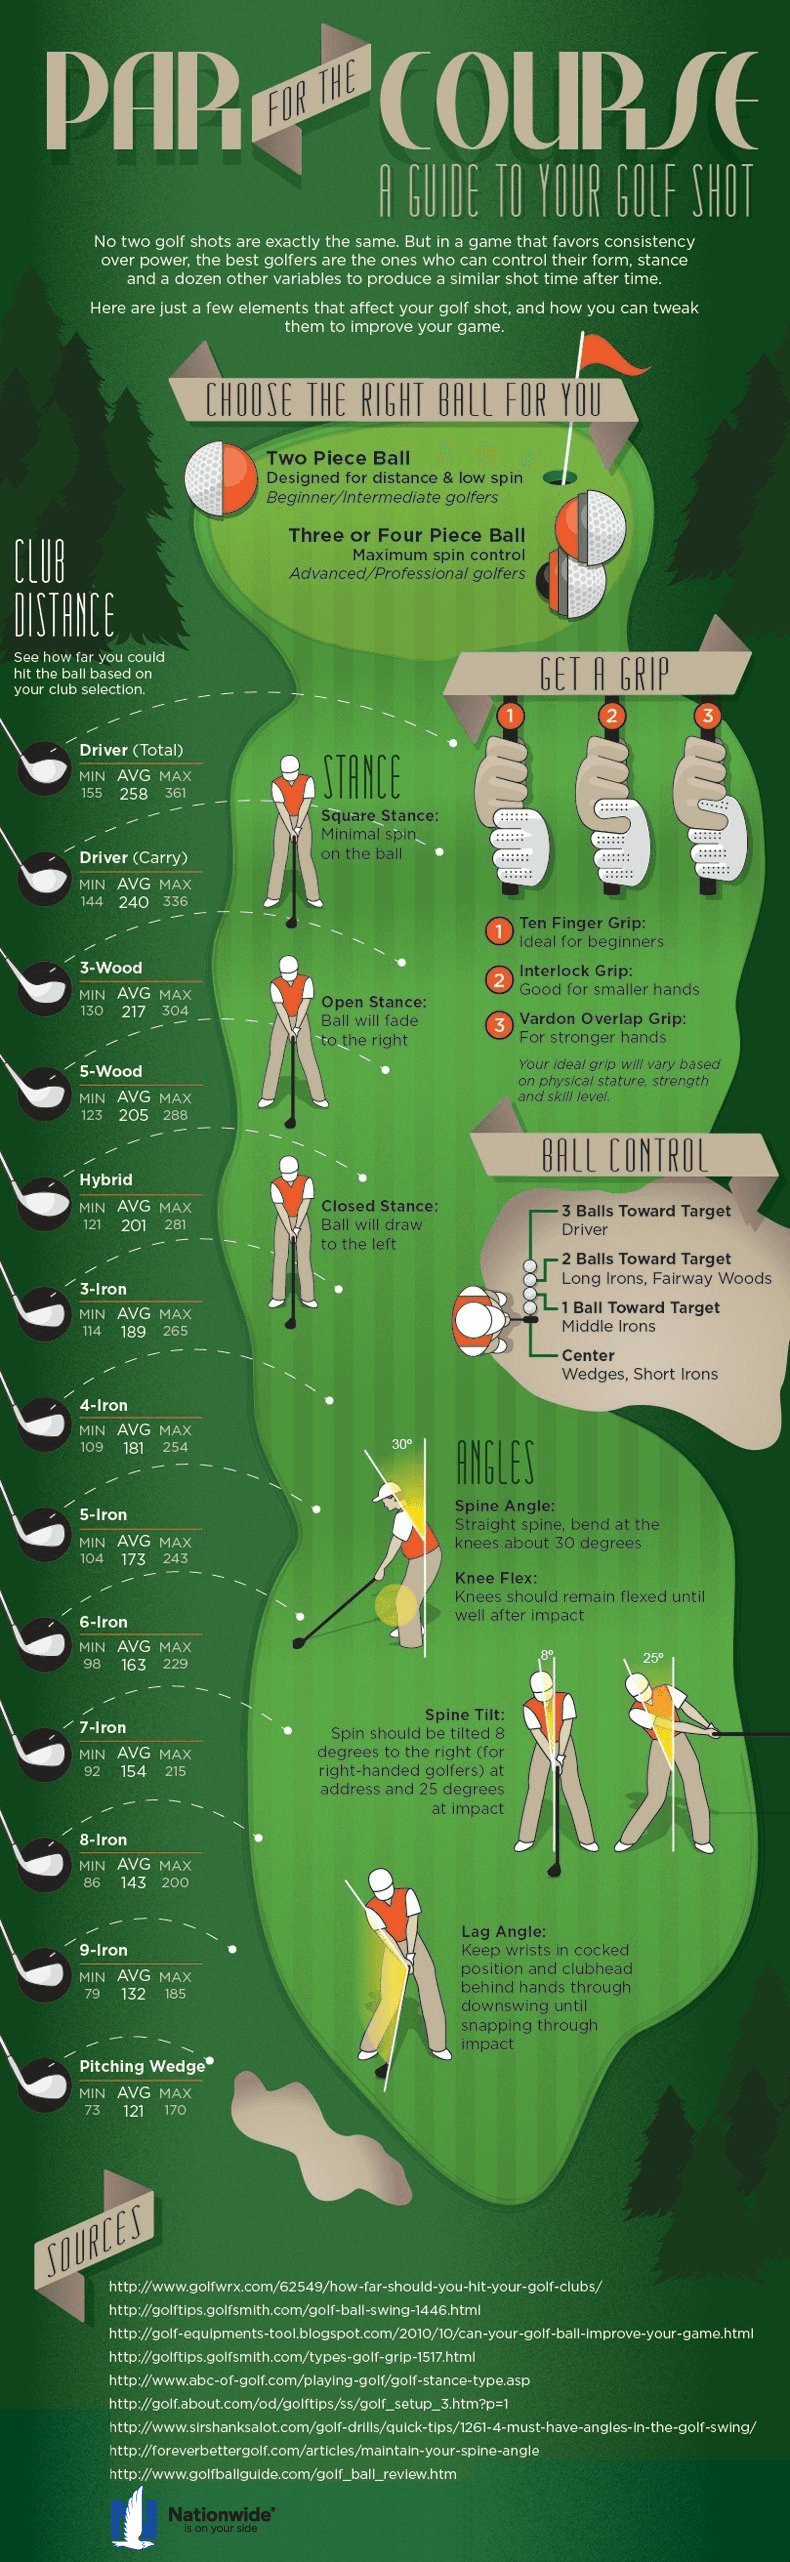 par for the course a guide to your golf shot learn golf club distances & improve your golf swing